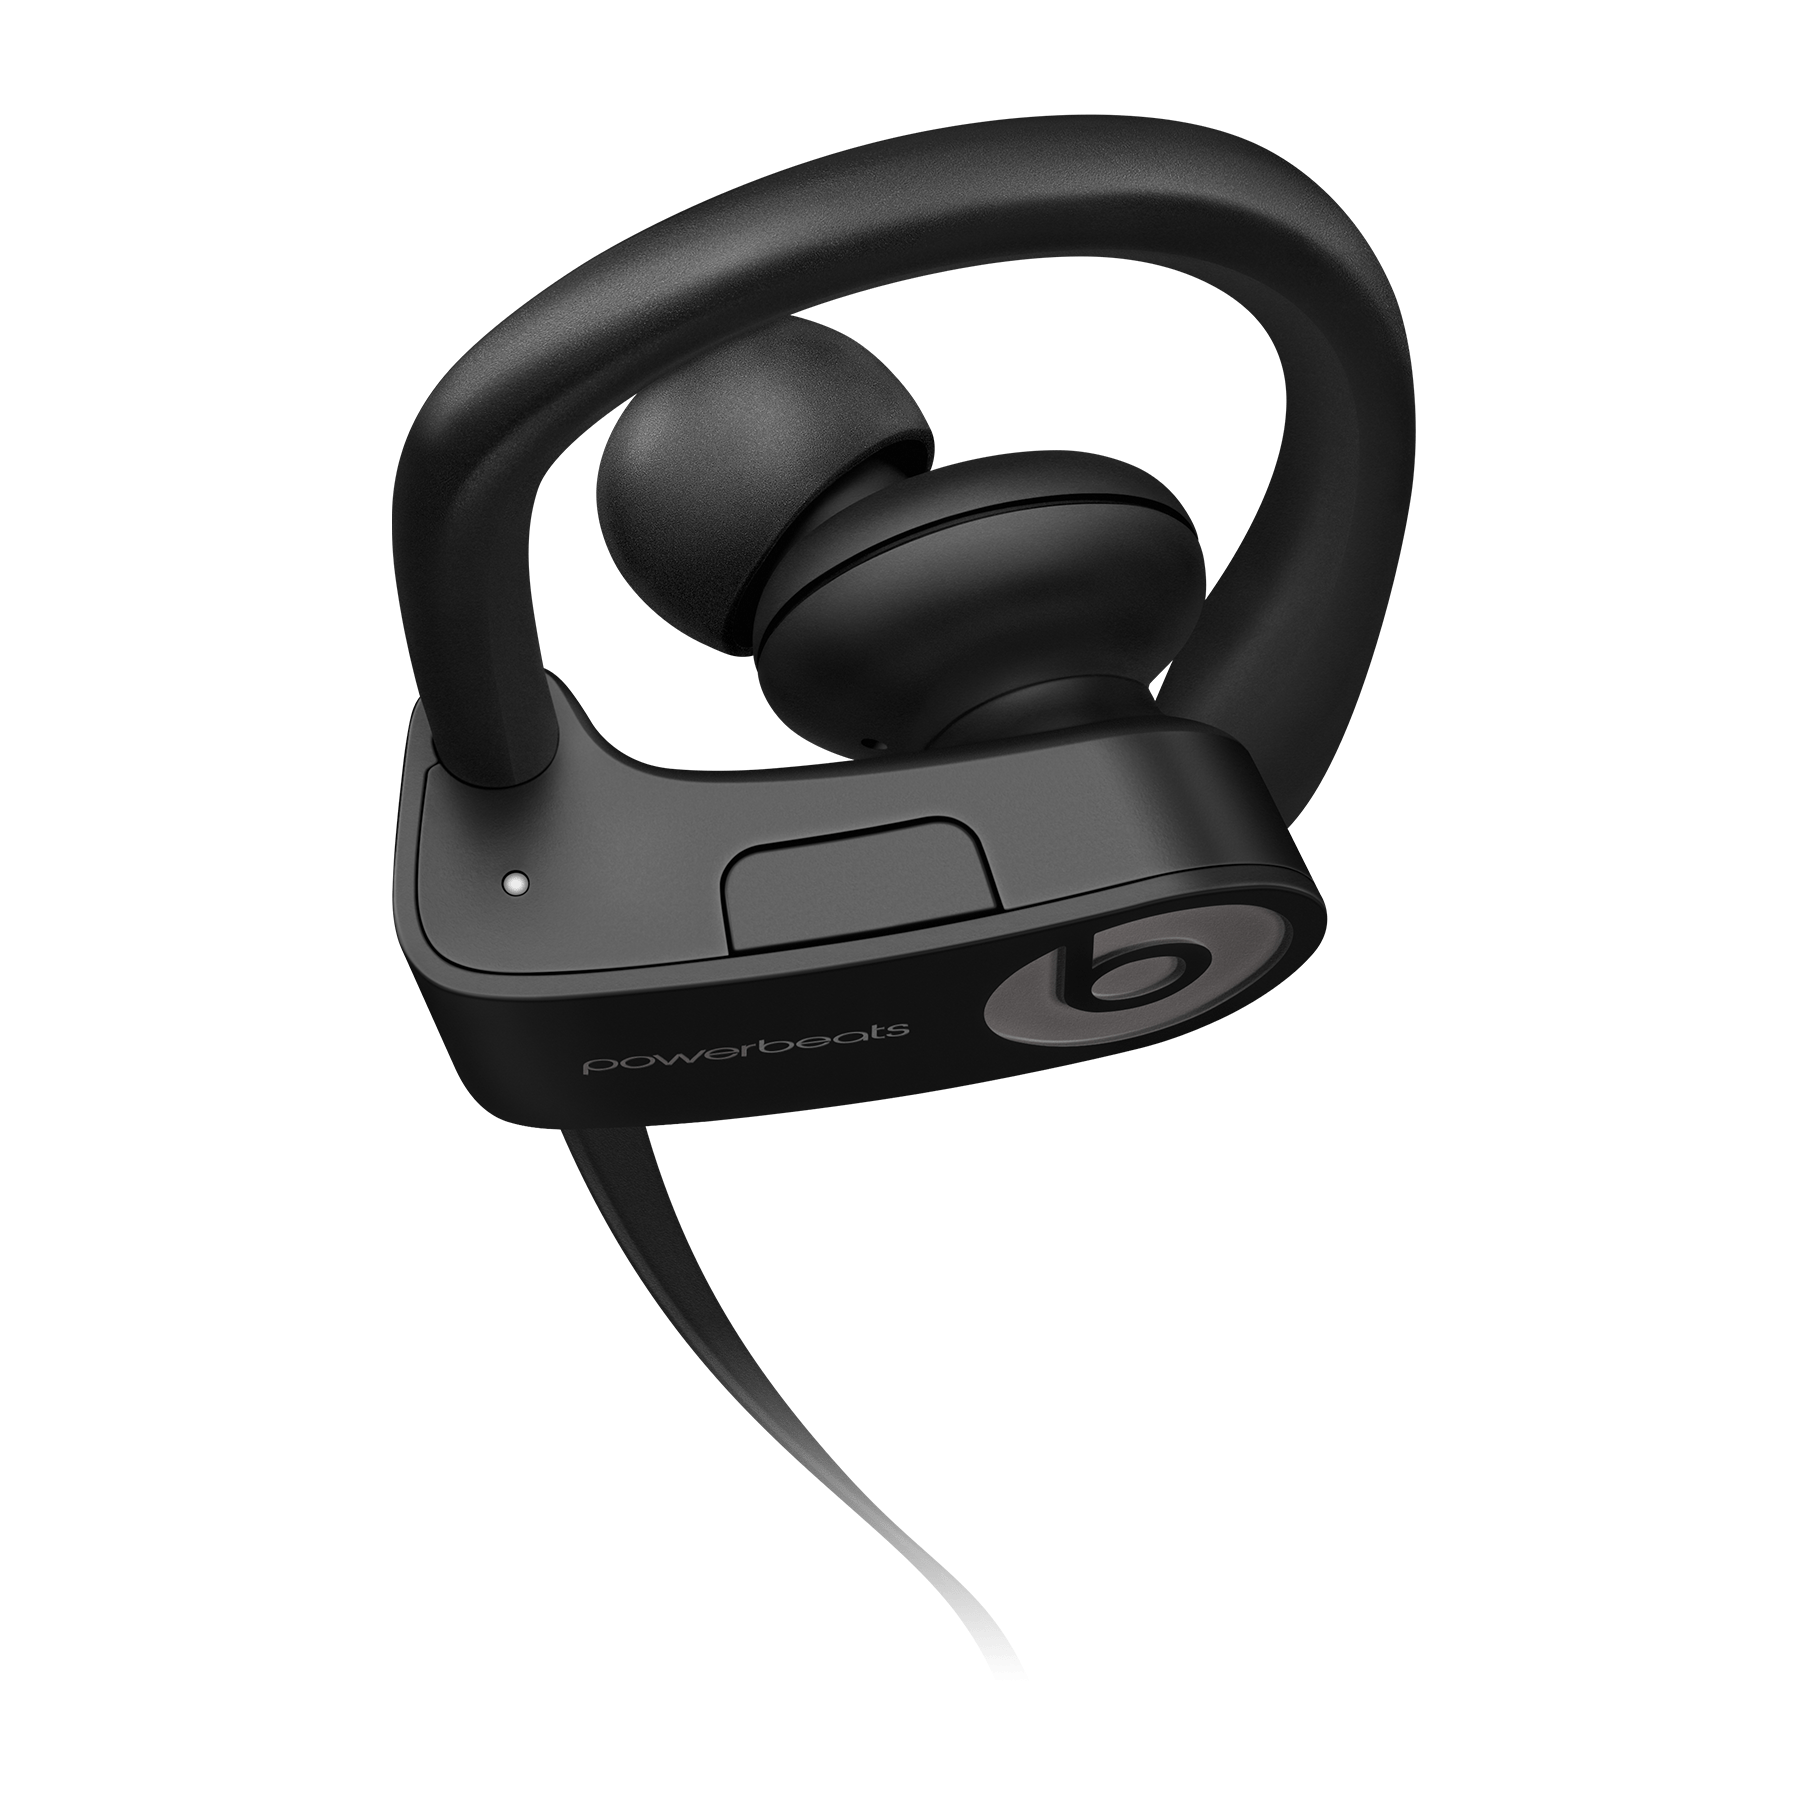 Powerbeats3 Wireless - Beats by Dre 22378dd0d3